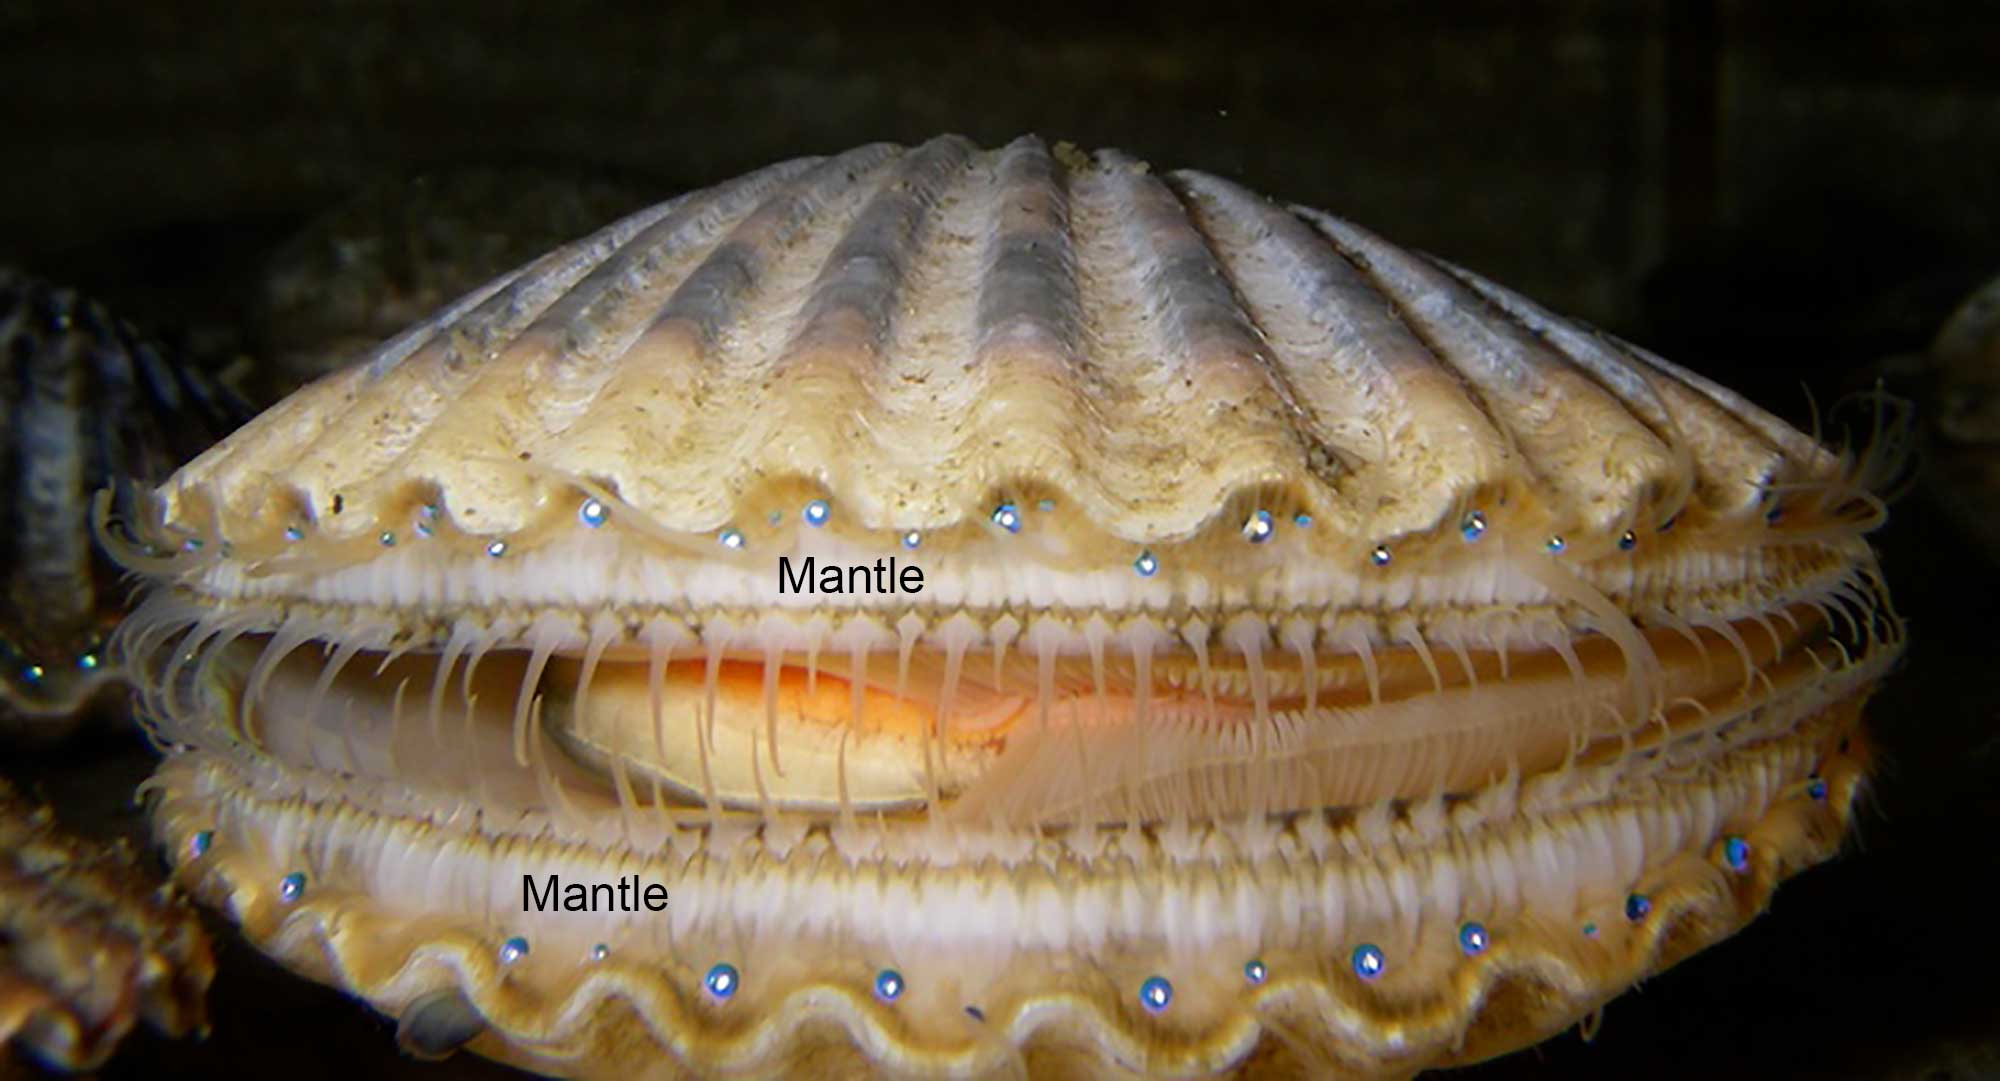 Photograph of a live scallop with its mantle (which bears eyes) labeled.